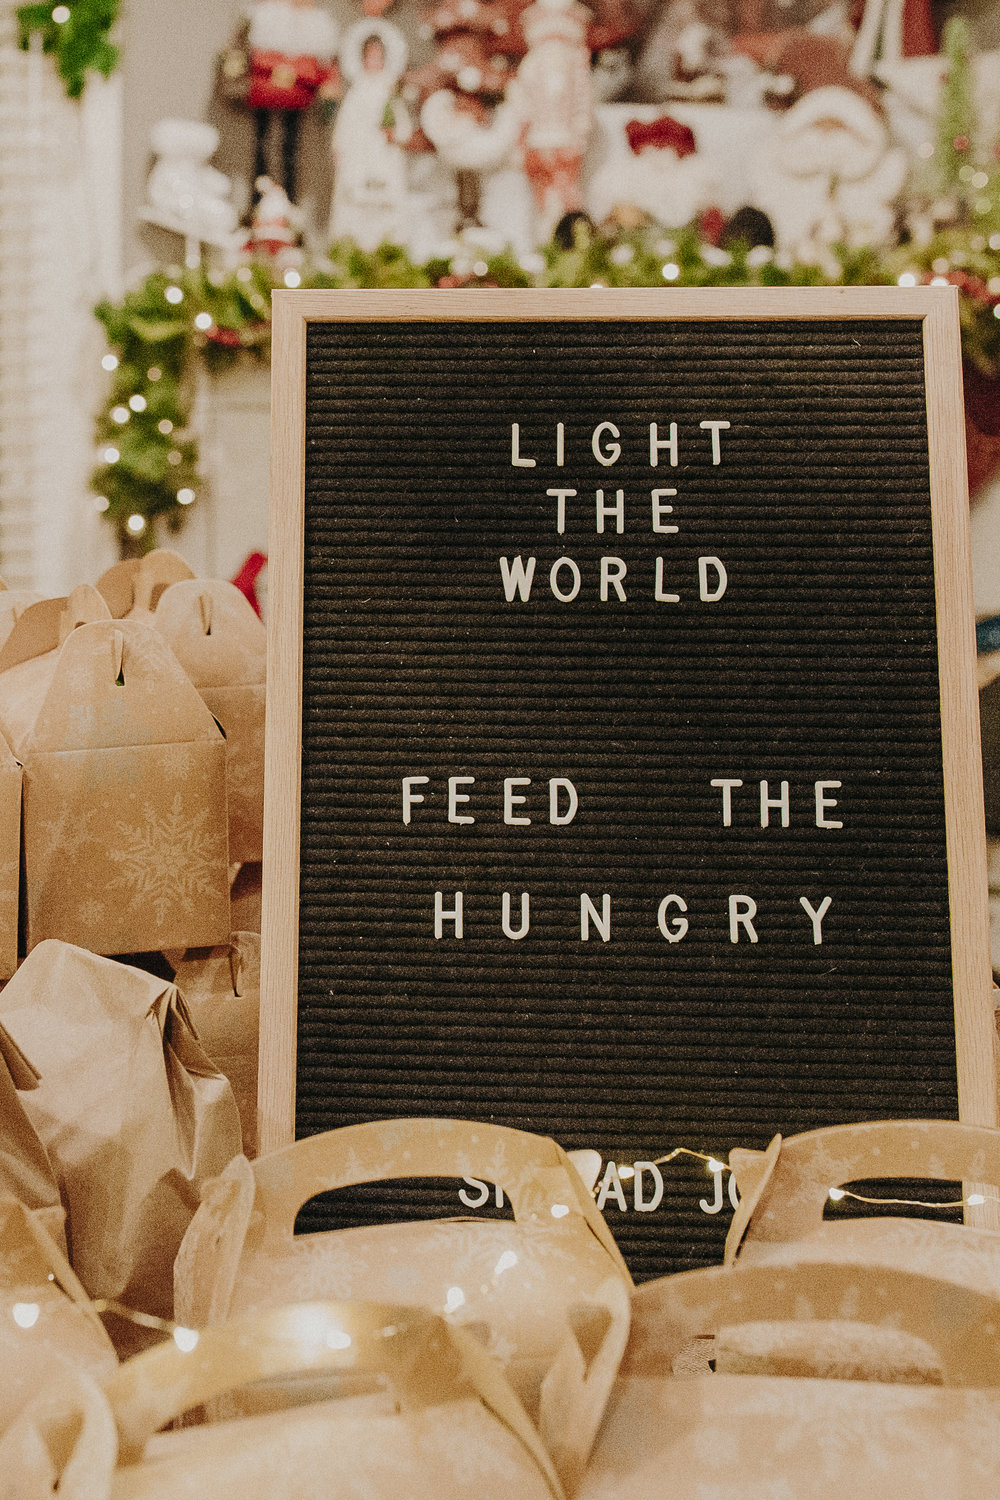 Light-The-World-Feed-The-Hungry-The-Church-Of-Jesus-Christ-Of-Latter-Day-Saints-17.jpg